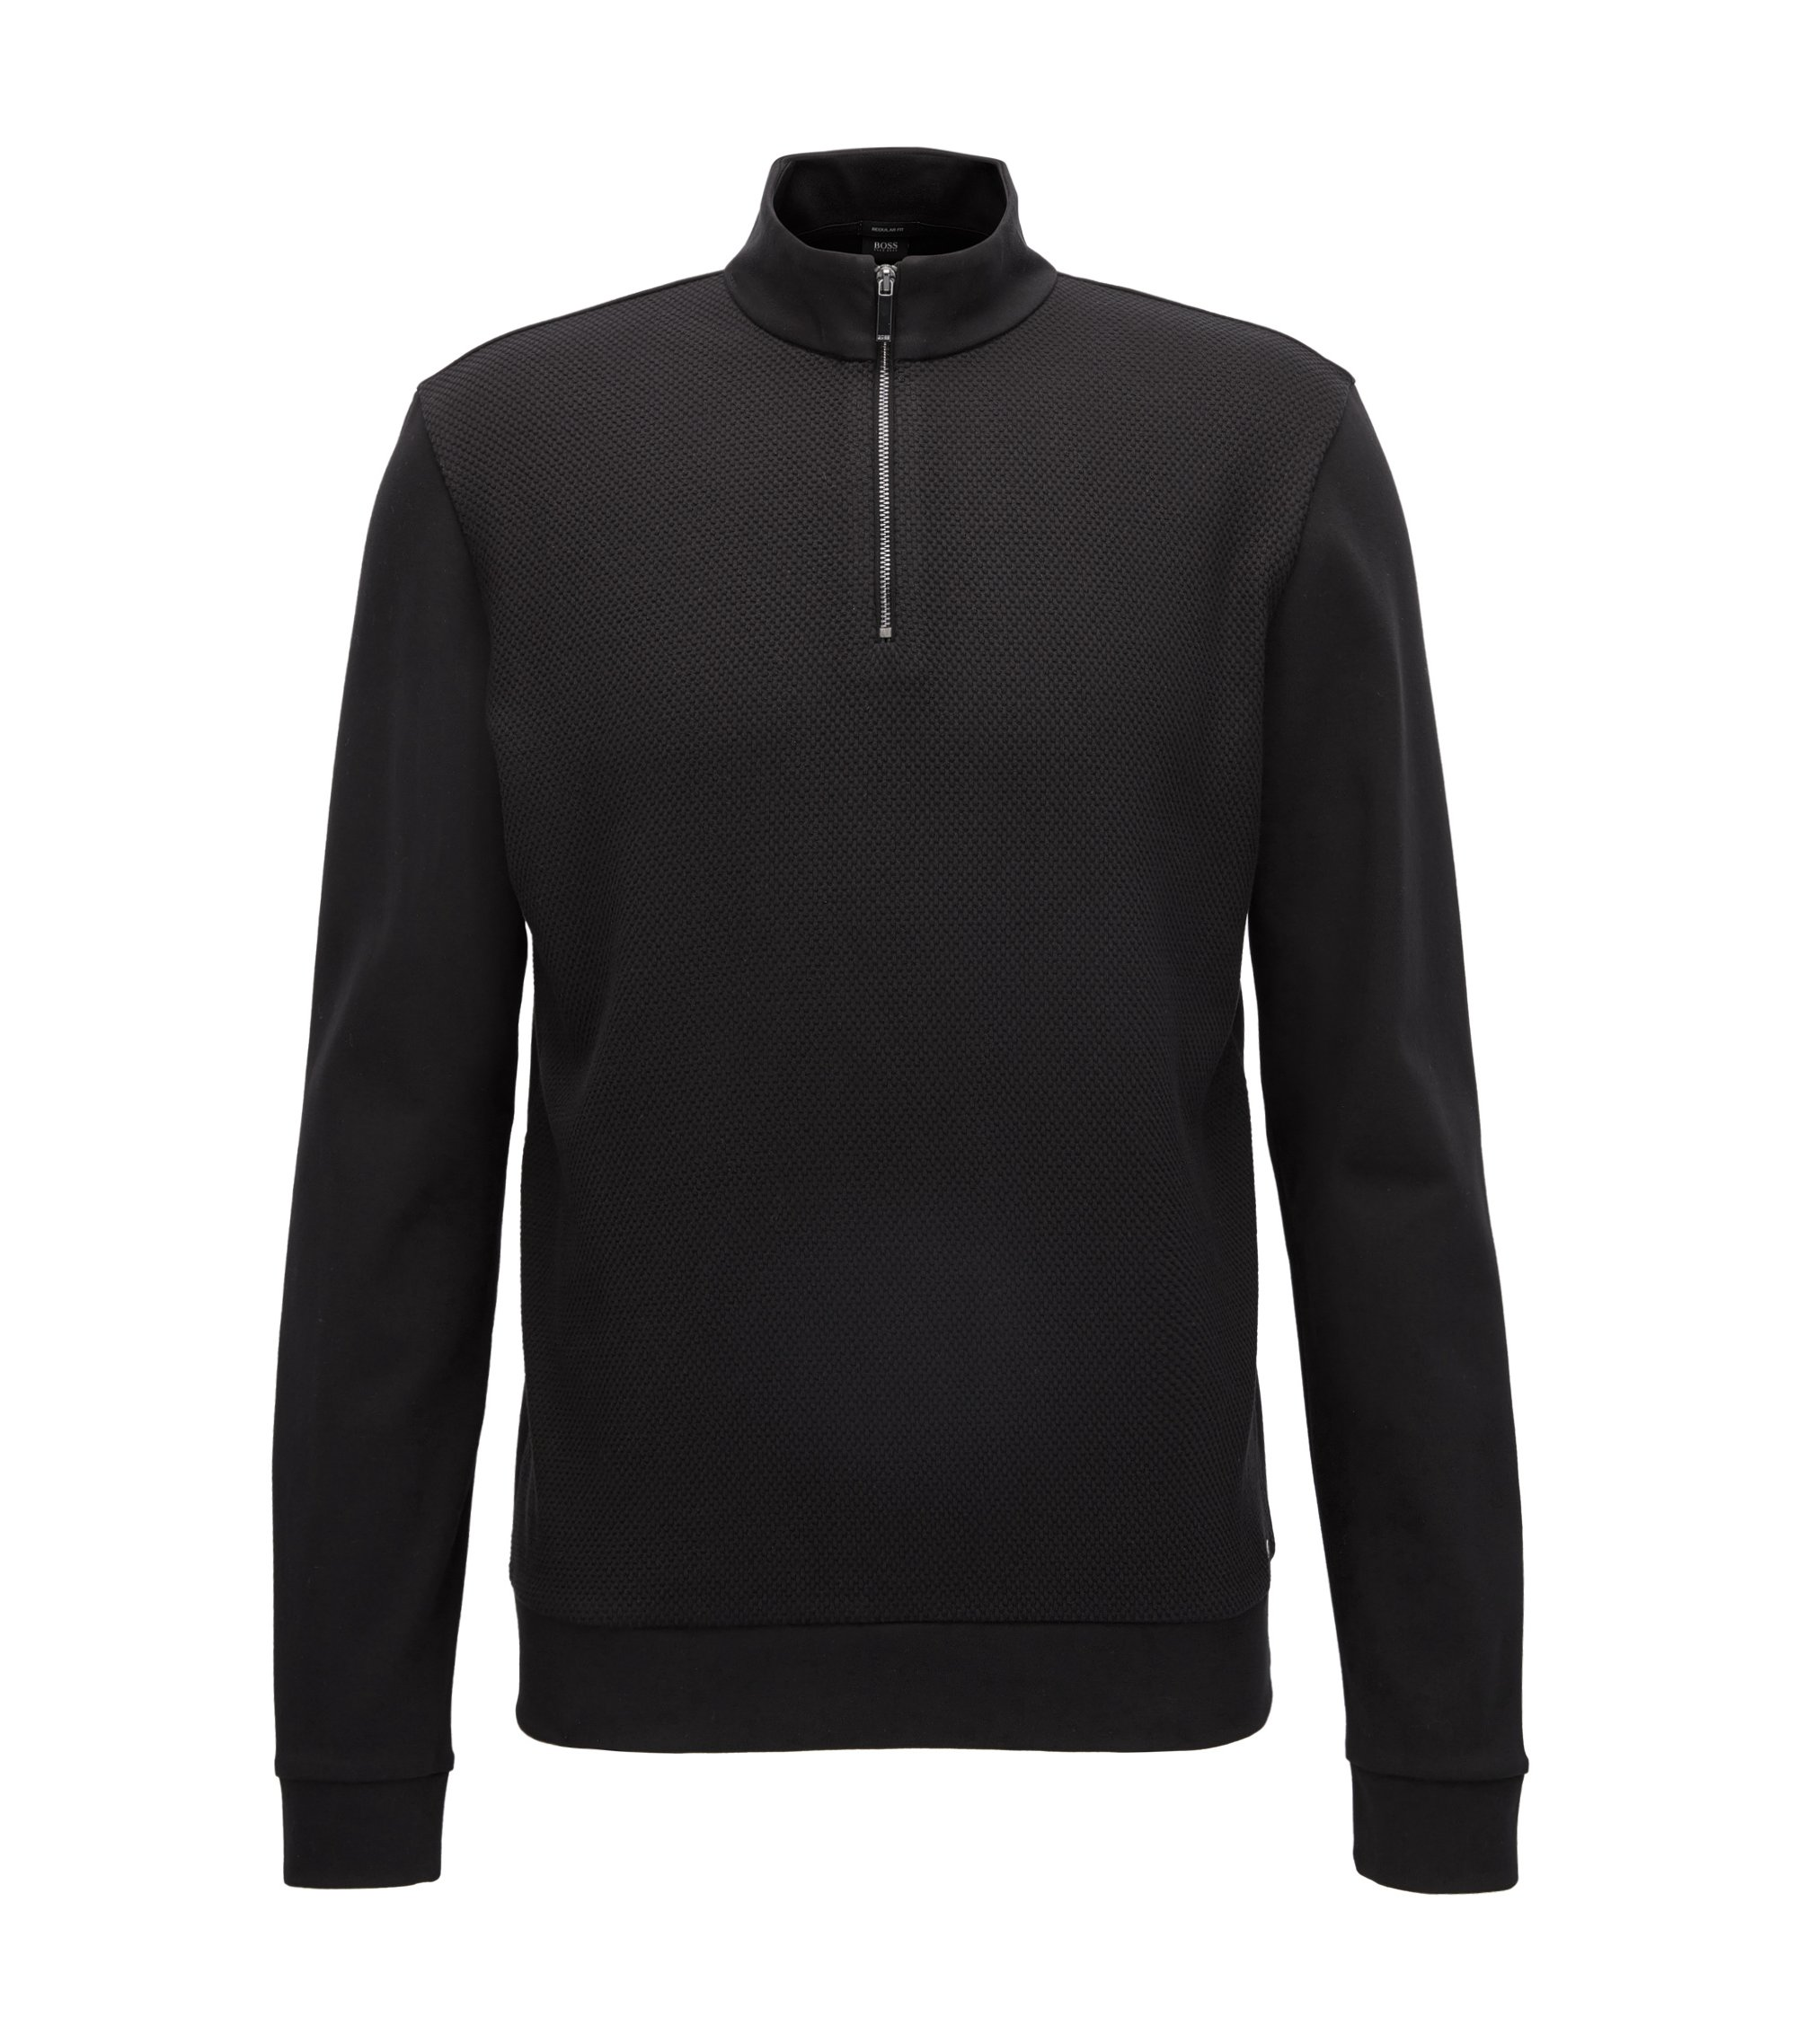 Zip-neck sweatshirt in mercerised cotton, Black